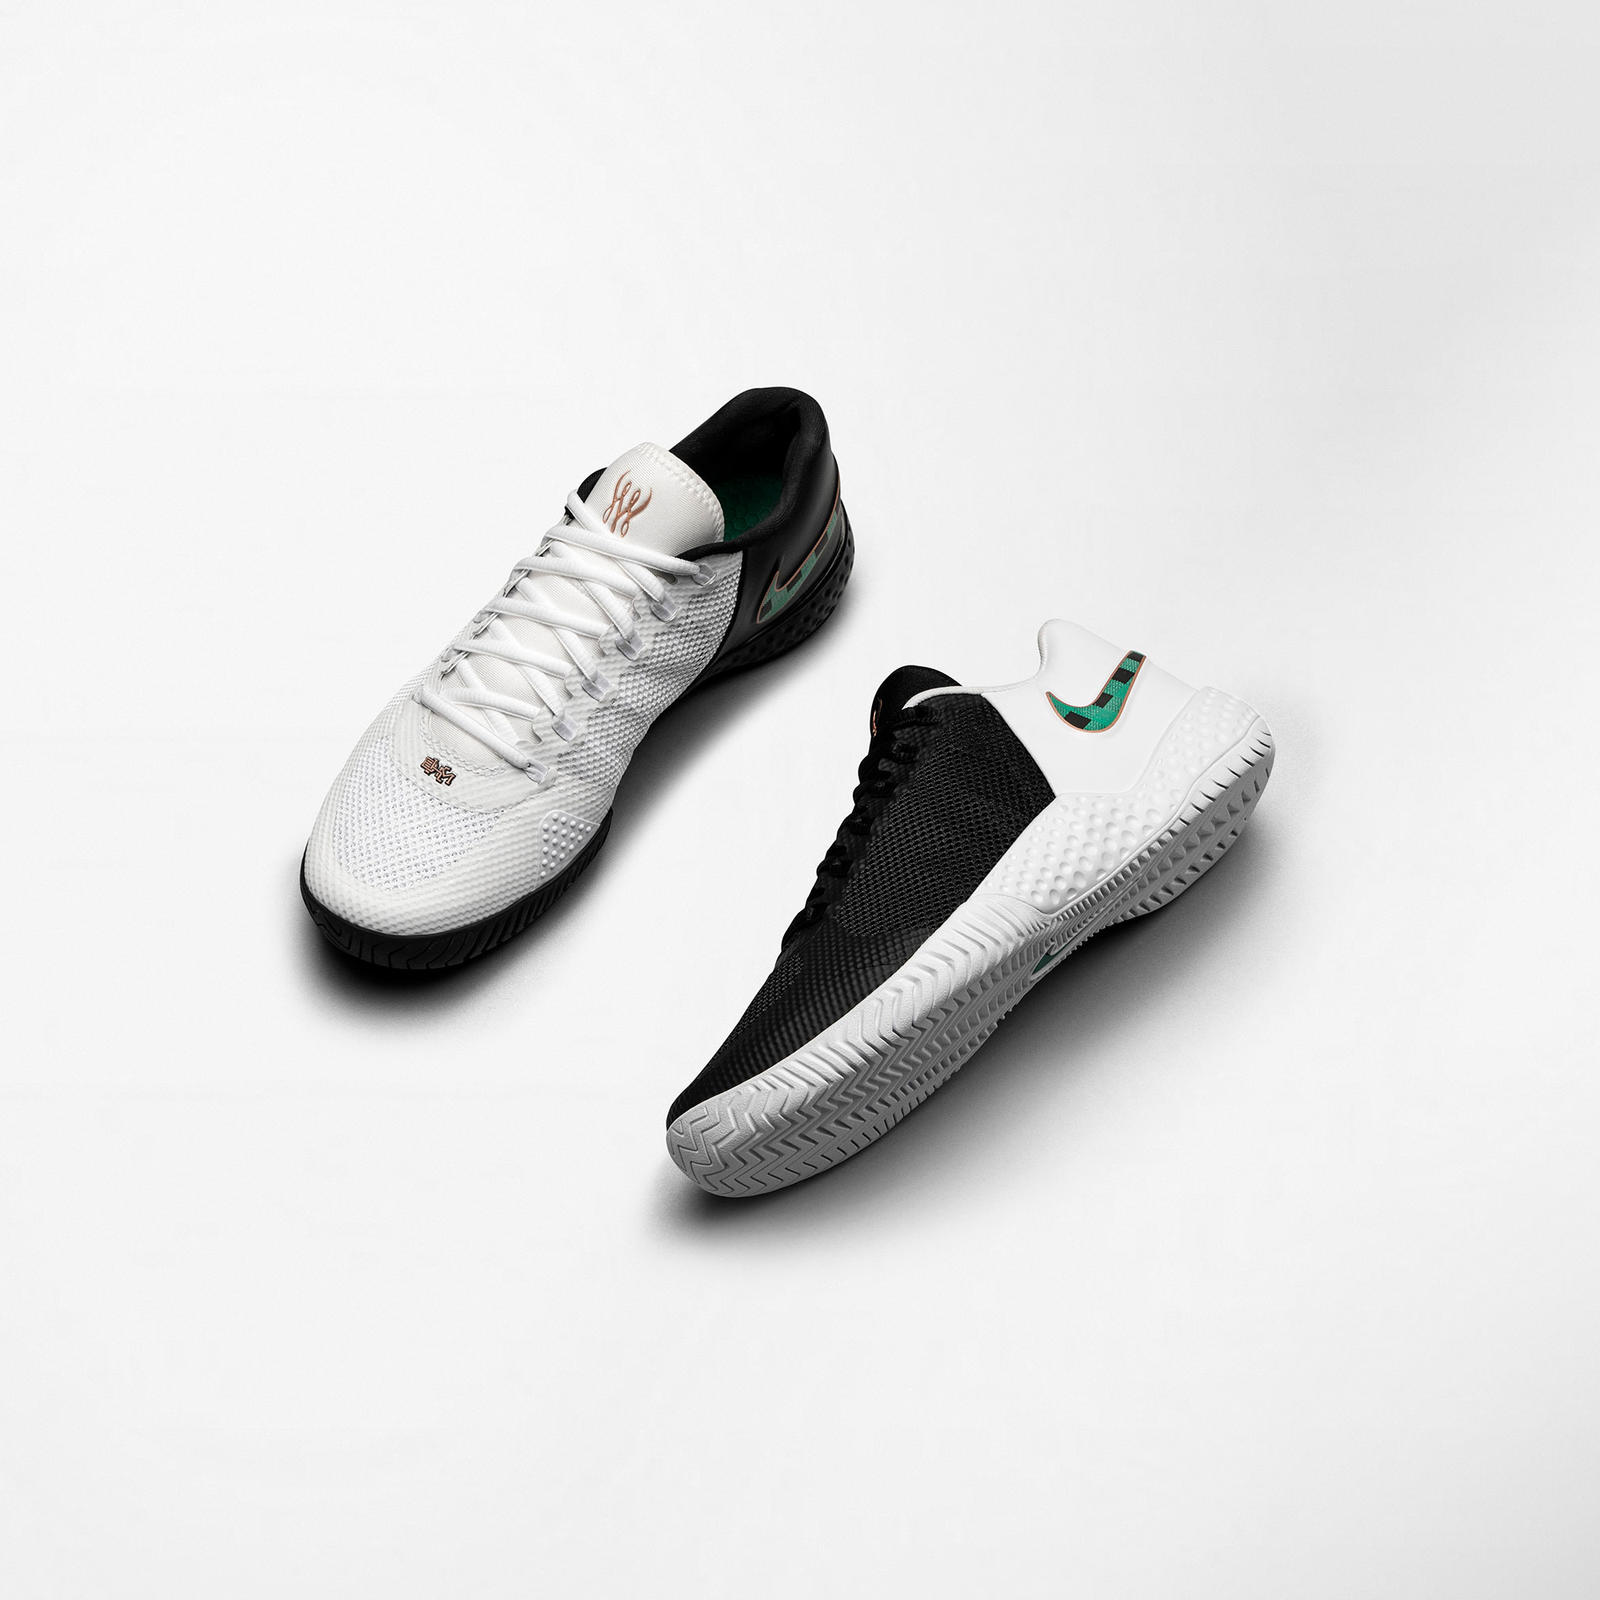 05413902aba6 Nike Black History Month Collection 2019 - Nike News